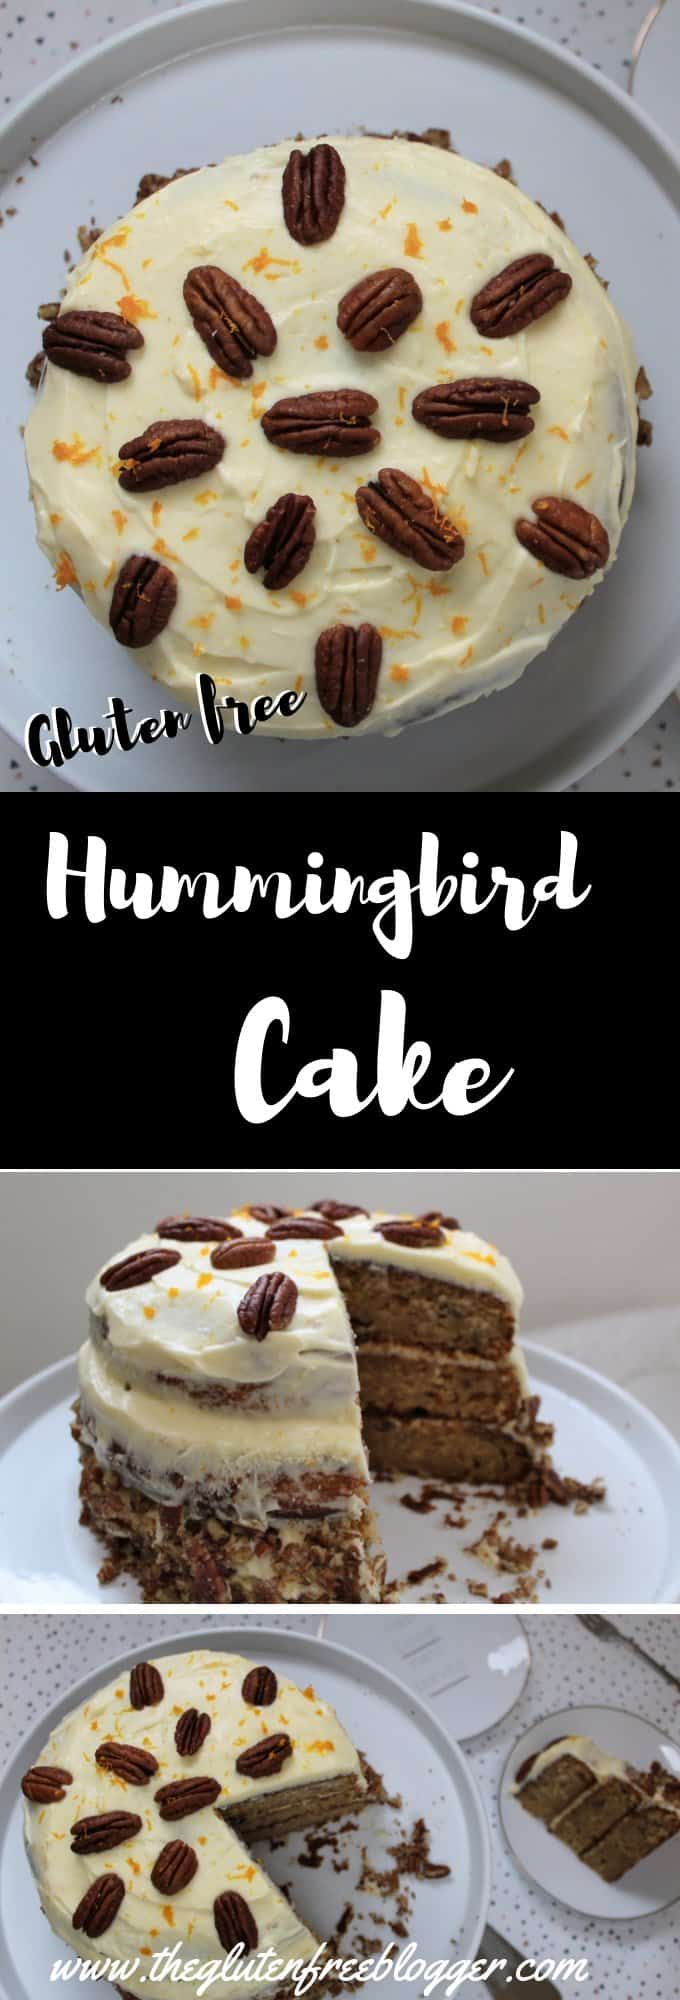 Gluten free hummingbird cake recipe - great british bake off - showstopper cake - coeliac disease